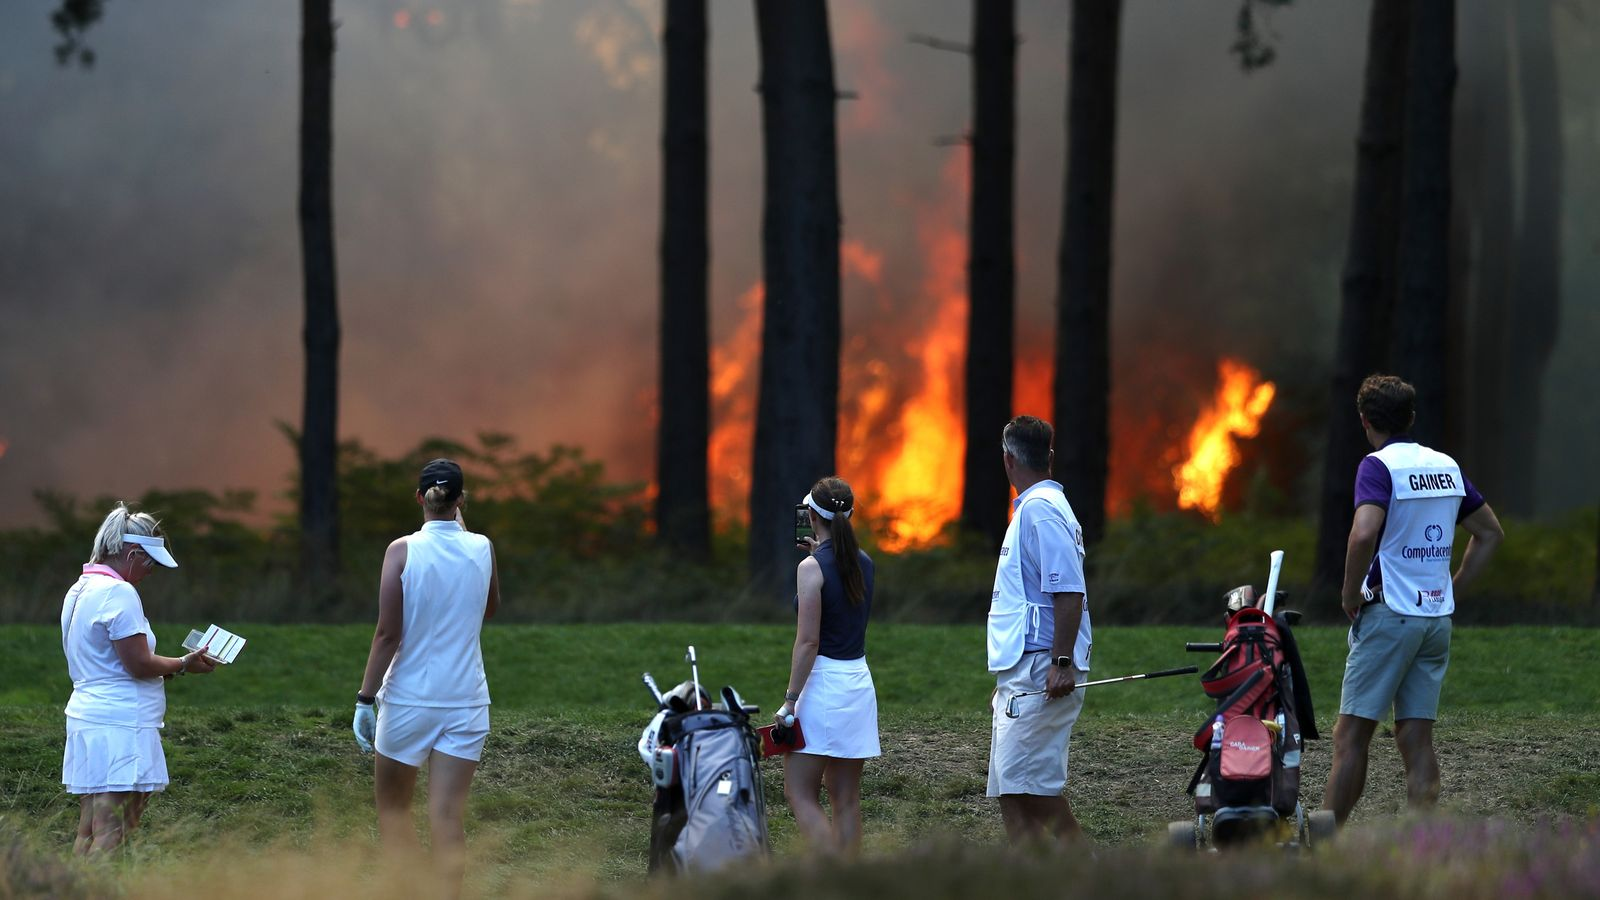 Wentworth fire: Rose Ladies Series Grand Final suspended - Sky Sports